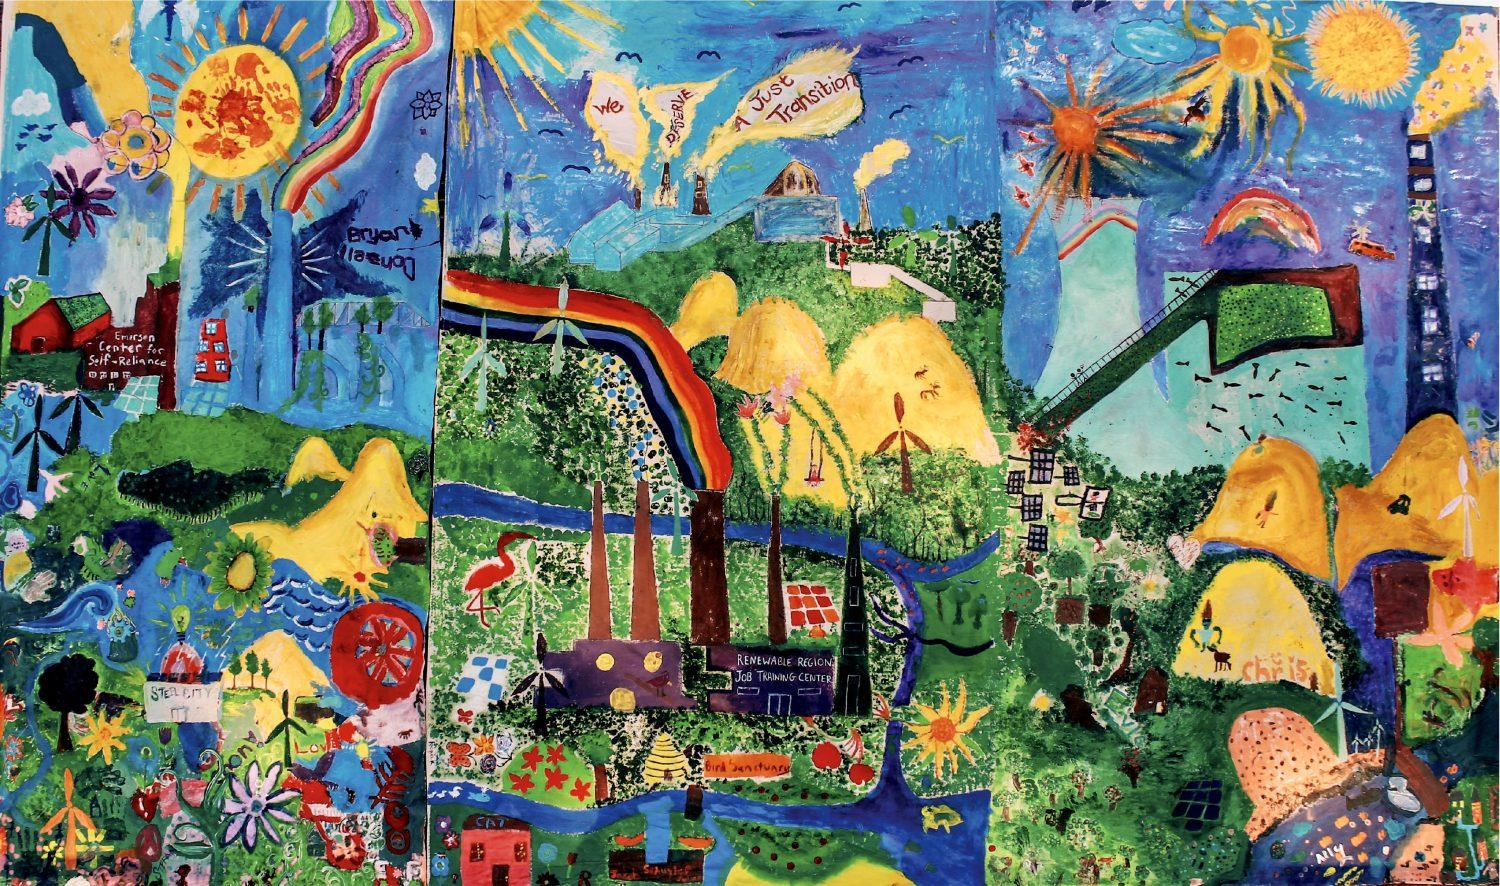 Our Ecopolis, acrylic on canvas mural in Gary, Indiana, 2018. Created by students at Steel City Academy, Kankakee Valley High School, Progressive Community Church of Gary and First Presbyterian Church of Michigan City.